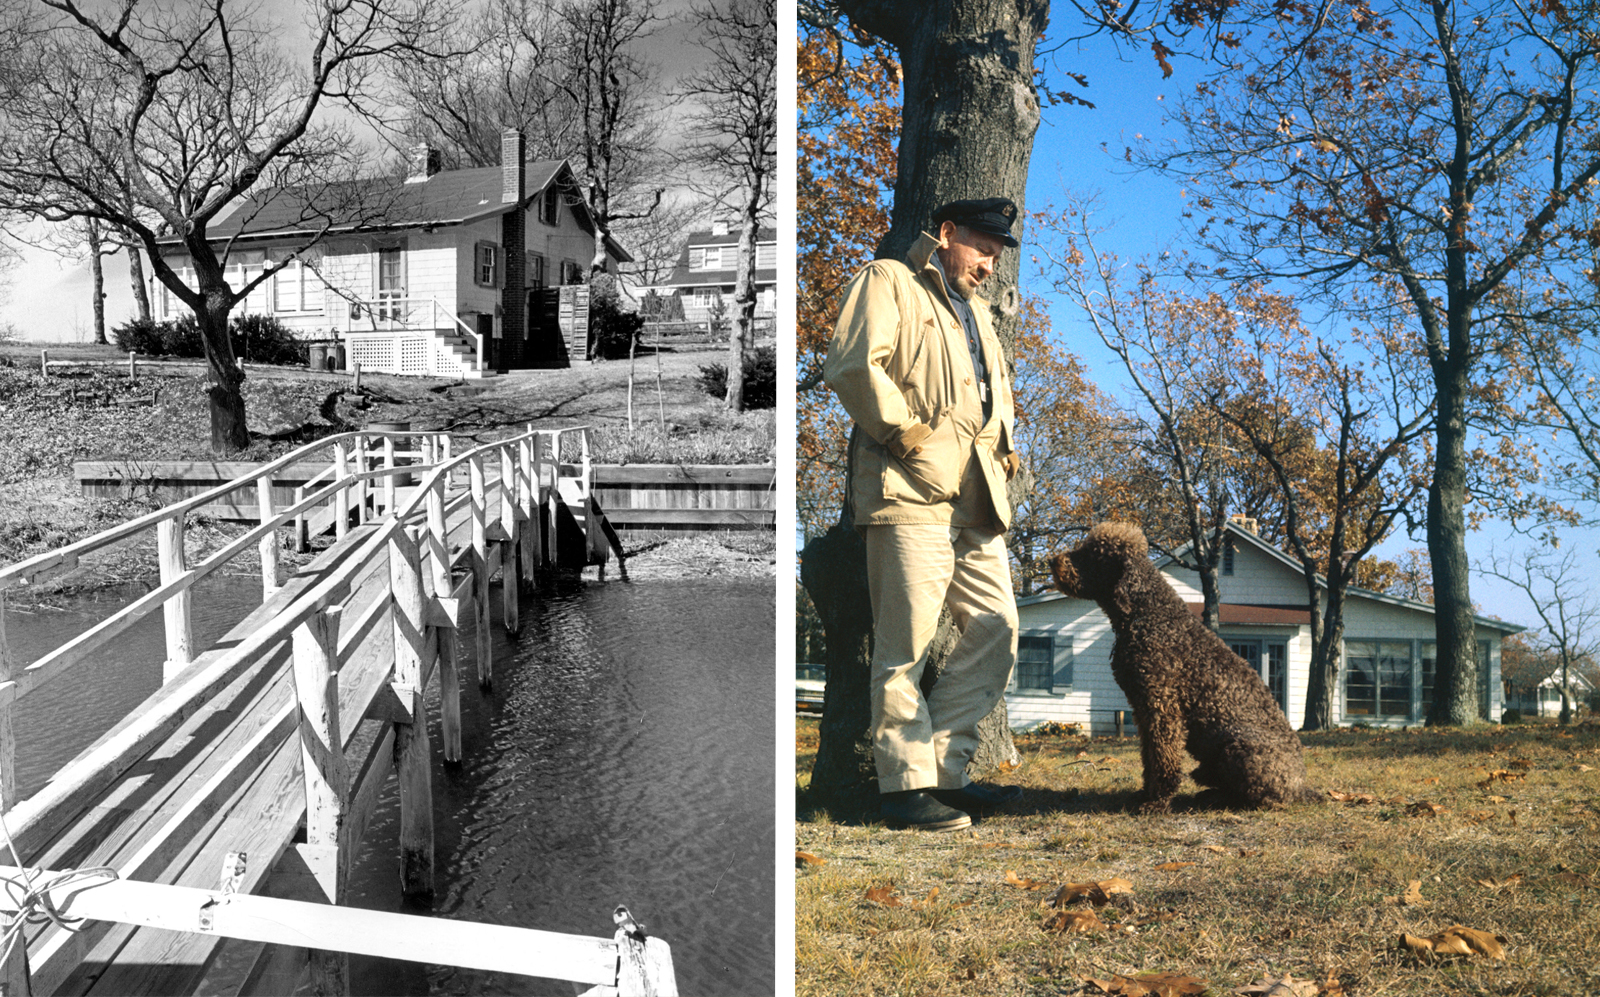 Photos from the 60s of John Steinbeck and his poodle Charley on their property. (Getty)